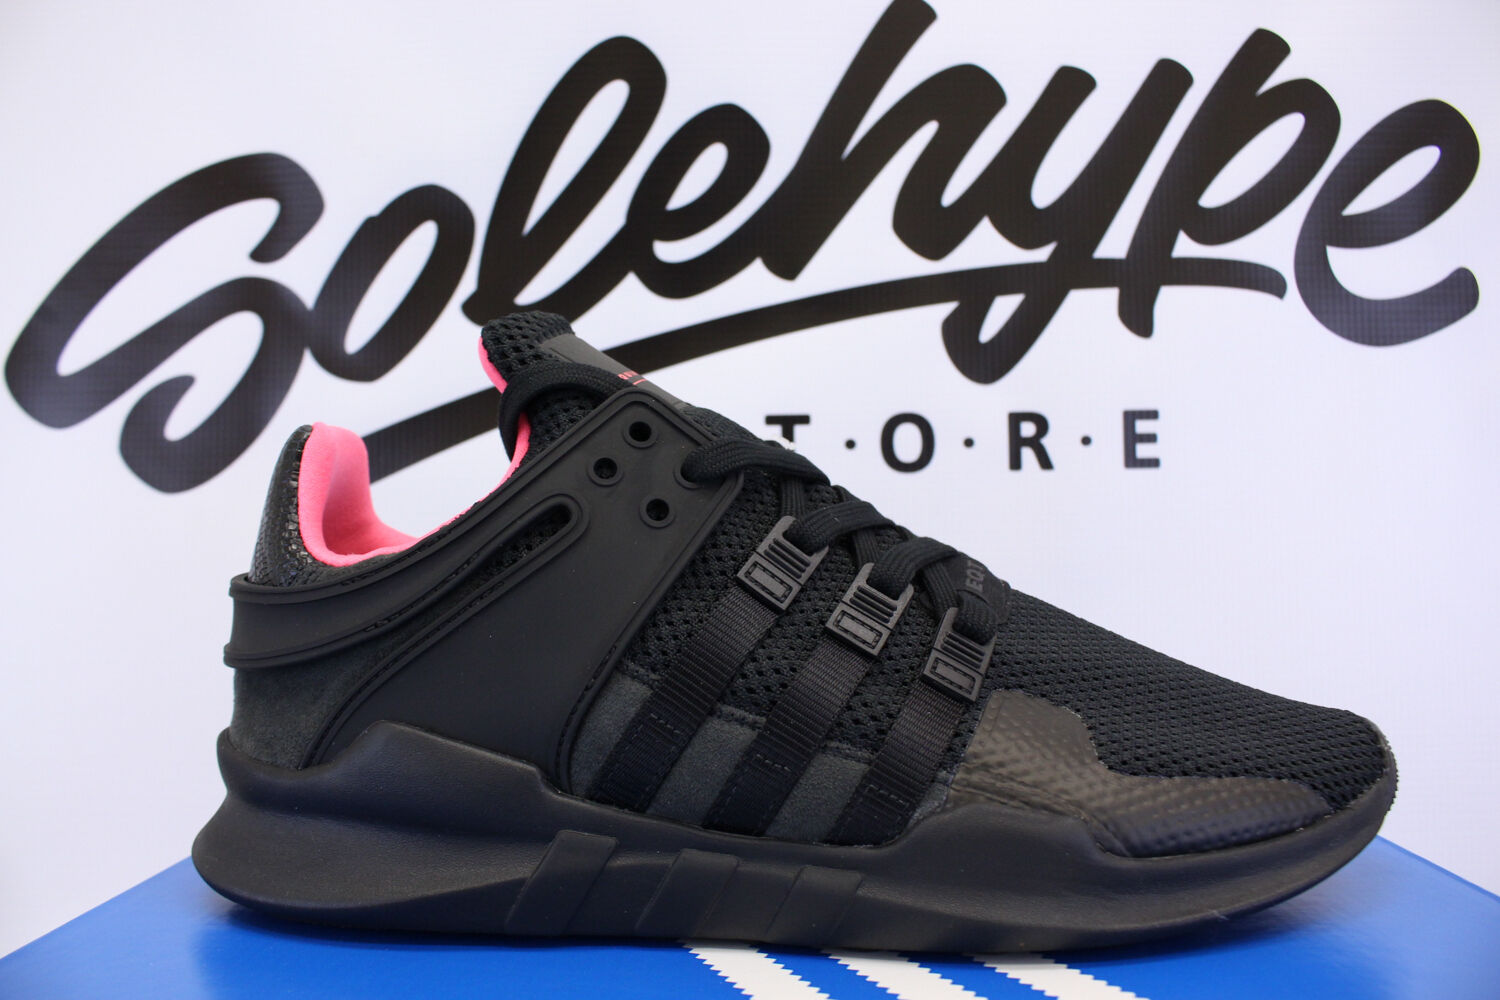 ADIDAS EQUIPMENT BB2018 EQT 91/16 ADV 2 SUPPORT Core BB2018 EQUIPMENT Negro Tamaño 11.5 a0f694